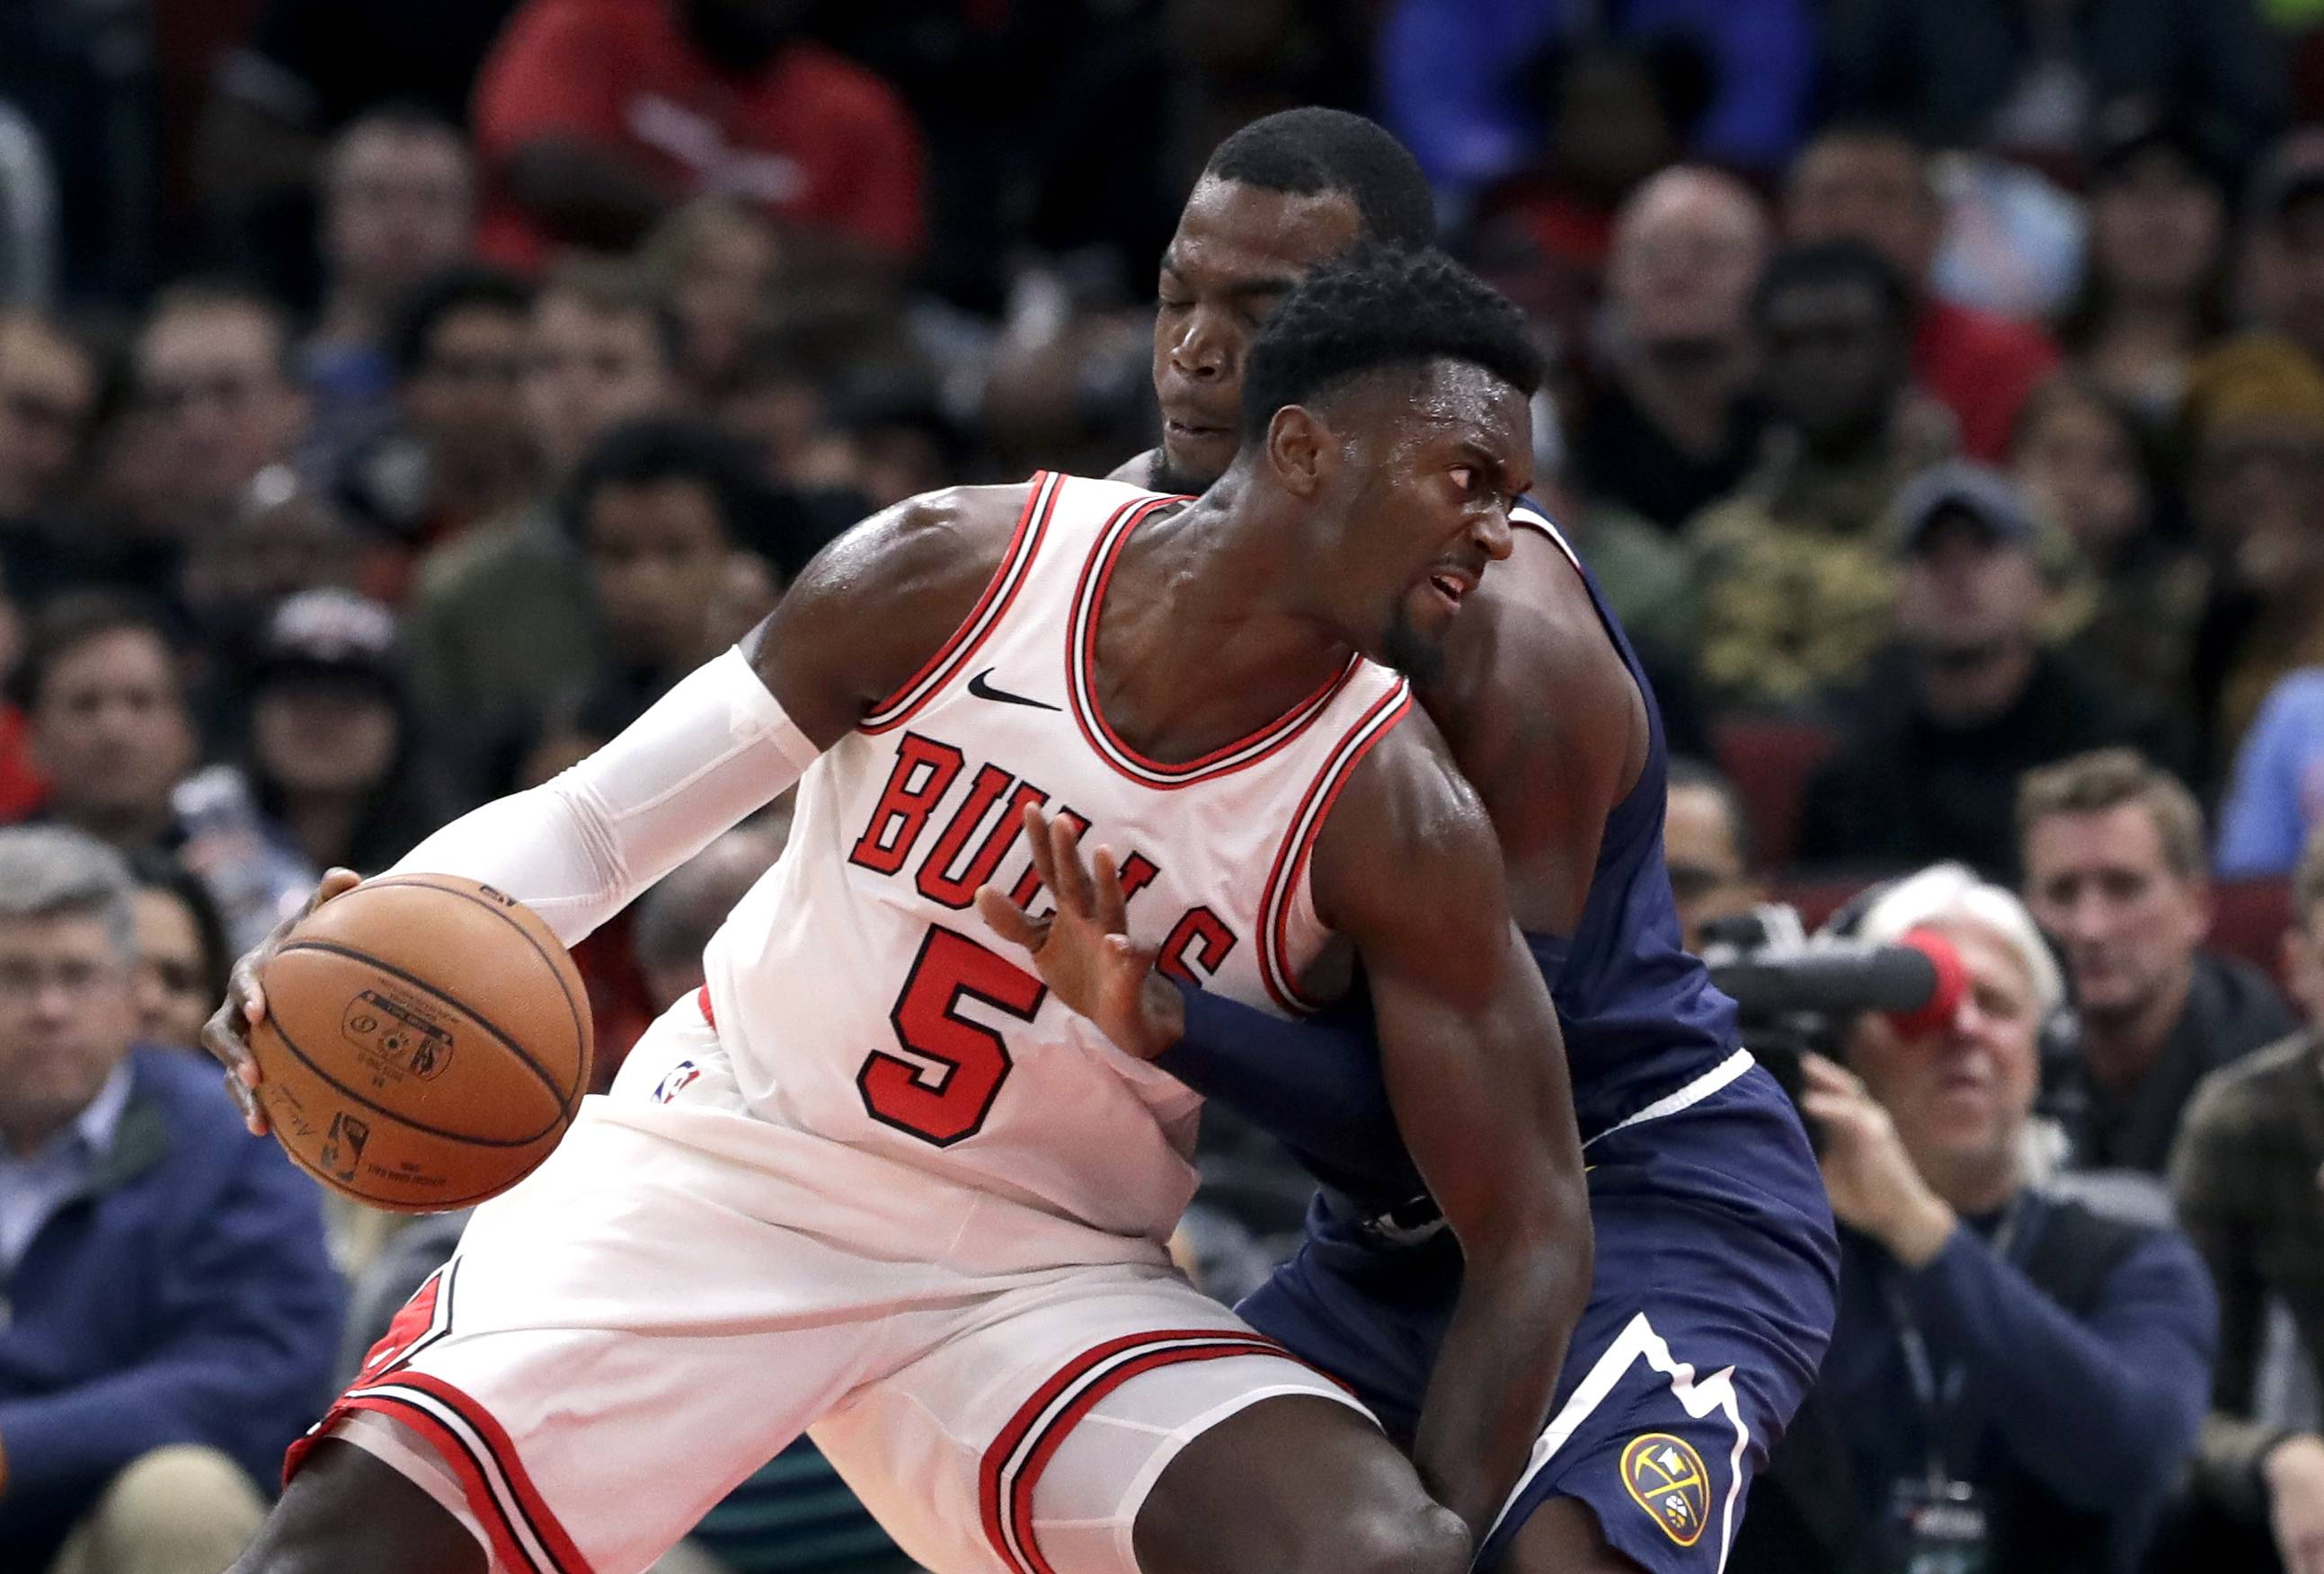 No extension, but Portis stays loyal to Chicago Bulls